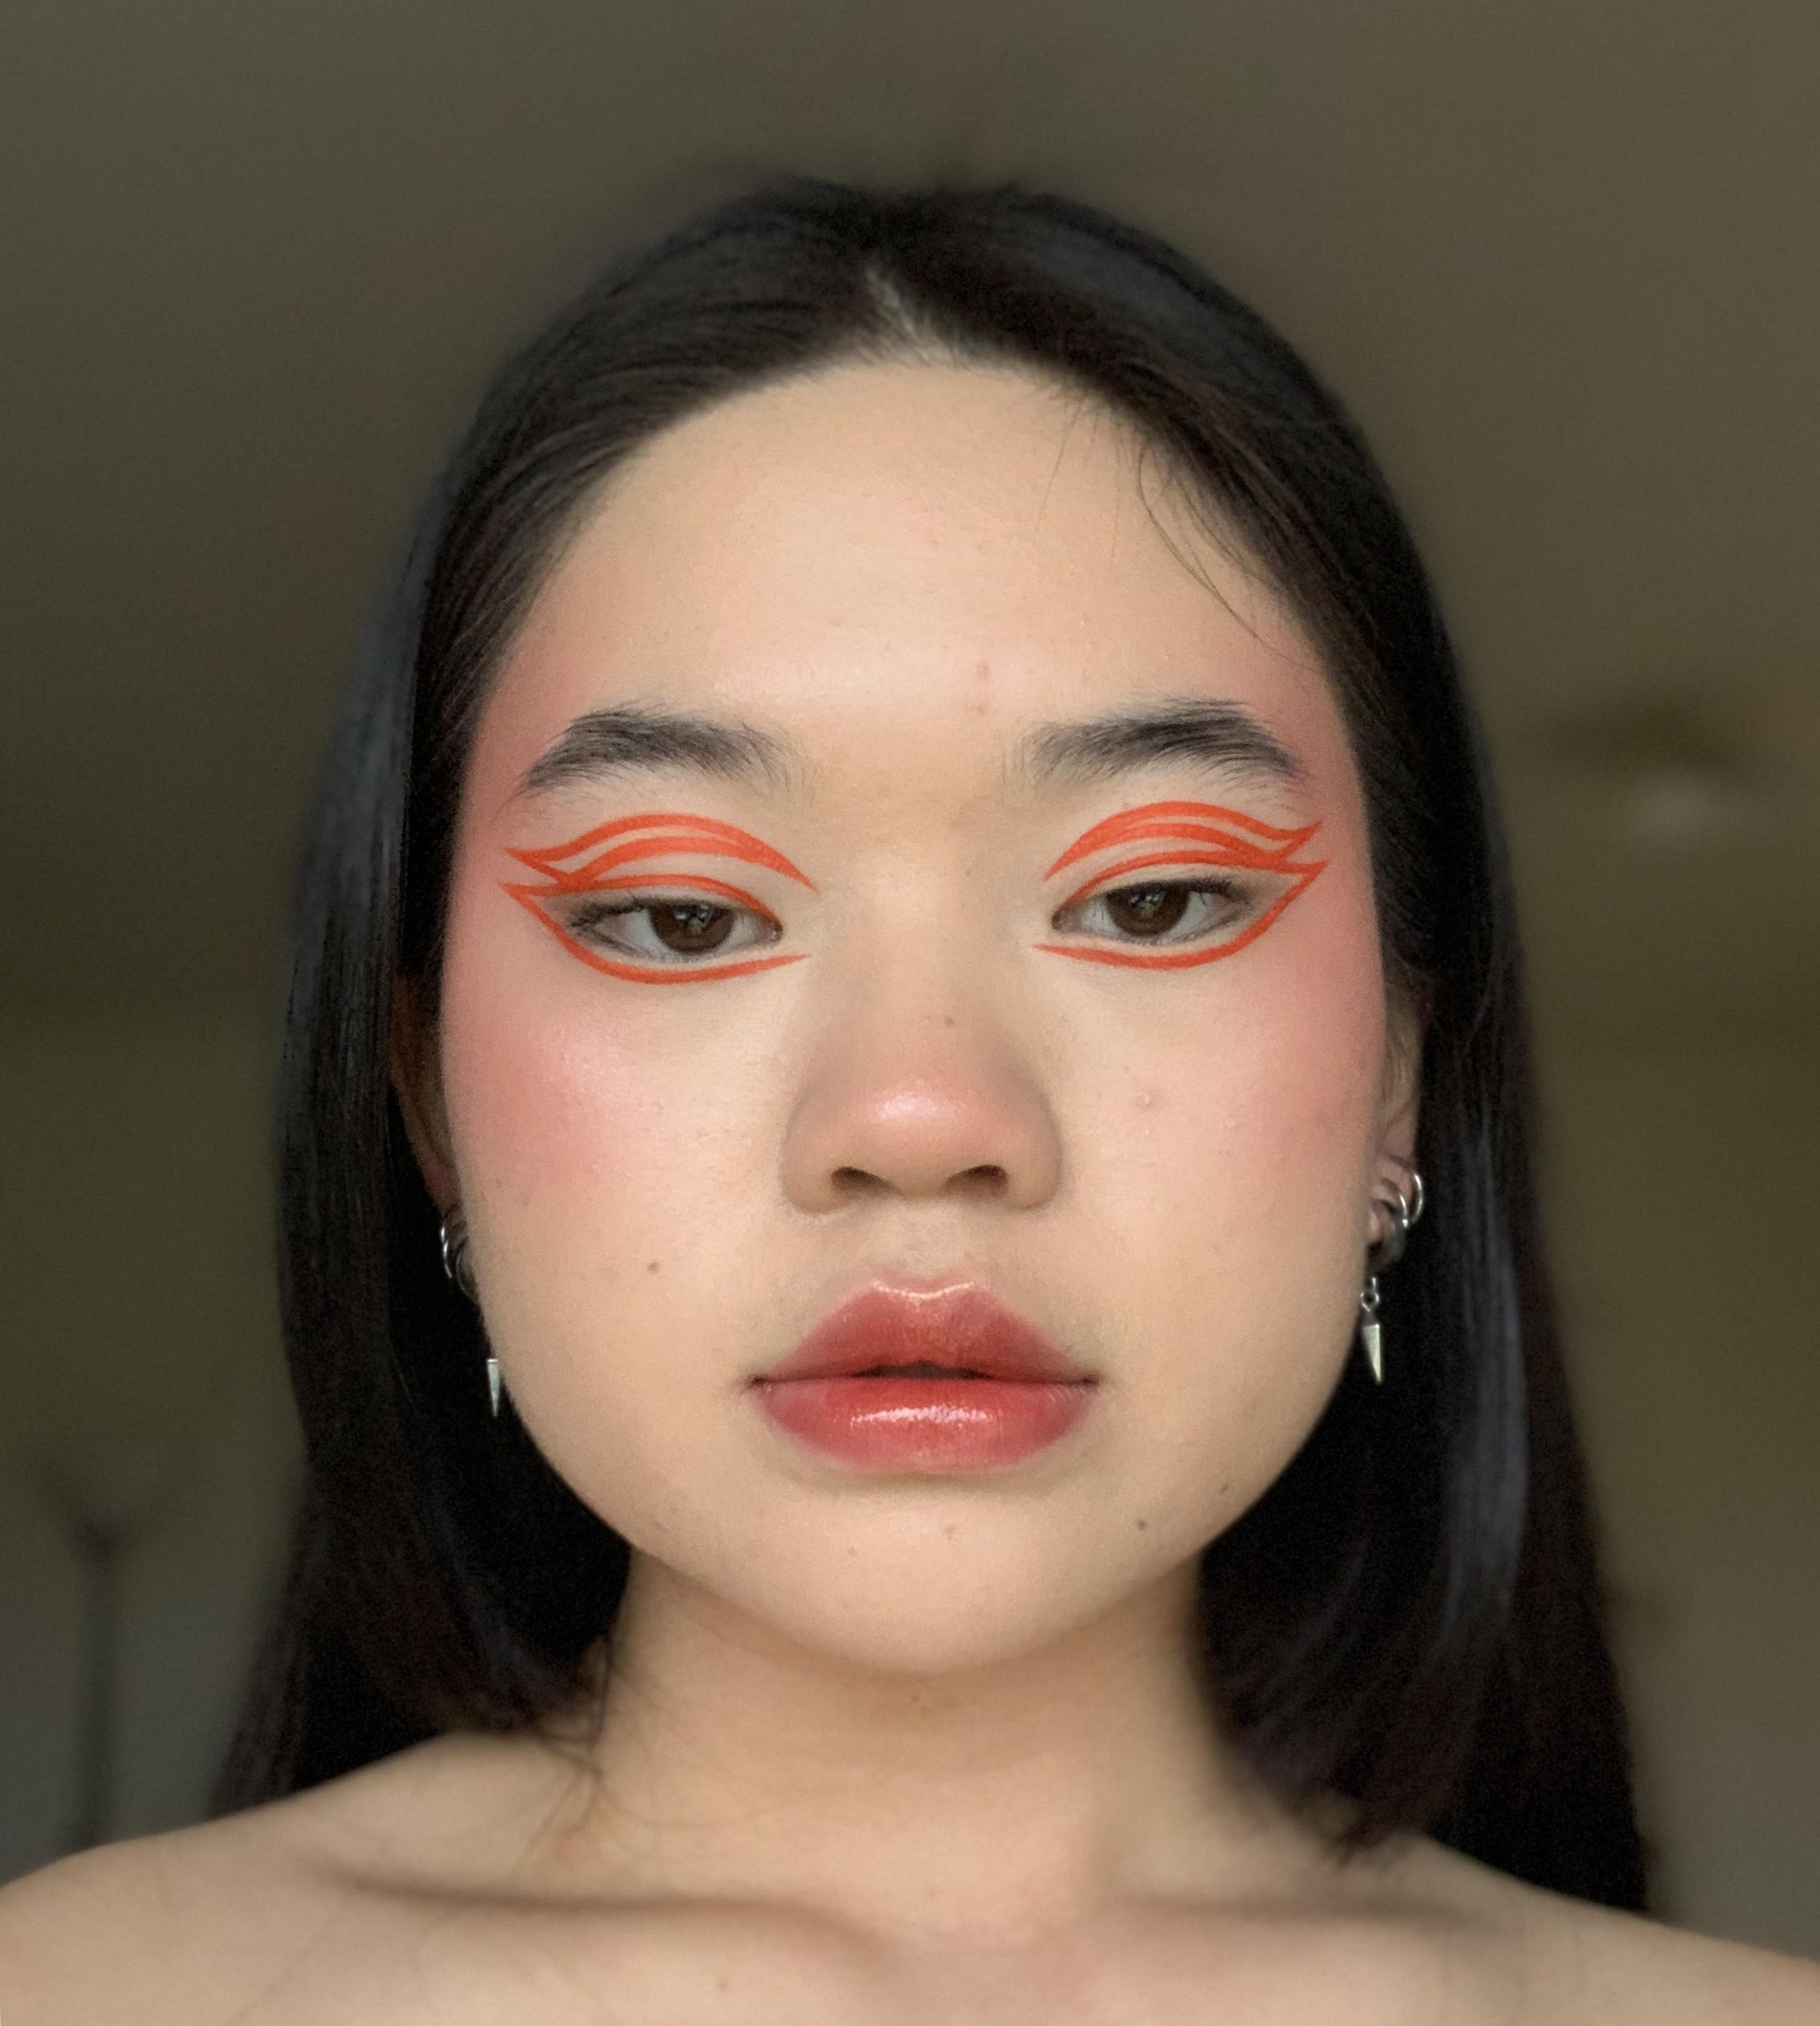 """TANIA KWOK OF TK.EYES - Born and raised in New Zealand and of Chinese heritage, Tania Kwok (@tk.eyes) juggles her enthusiasm for makeup with working towards her degree in biological sciences and physiology. Tania breaks down why the word """"diversity"""" needs to be further unpacked in the beauty industry and why Pat McGrath is """"the mother of makeup""""."""